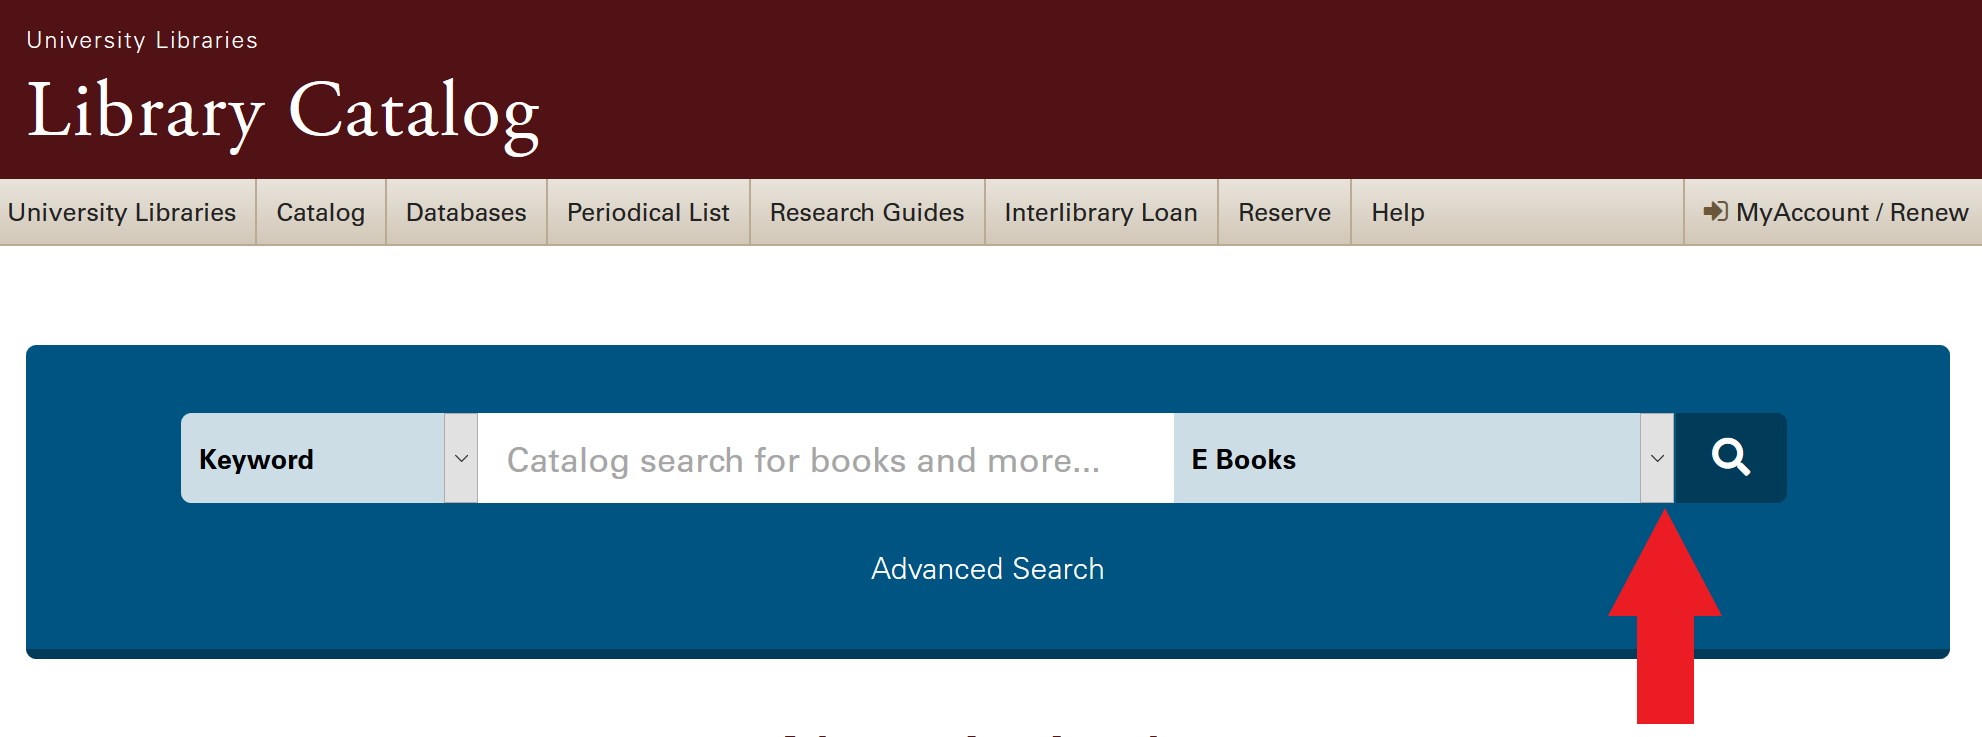 image of library catalog search